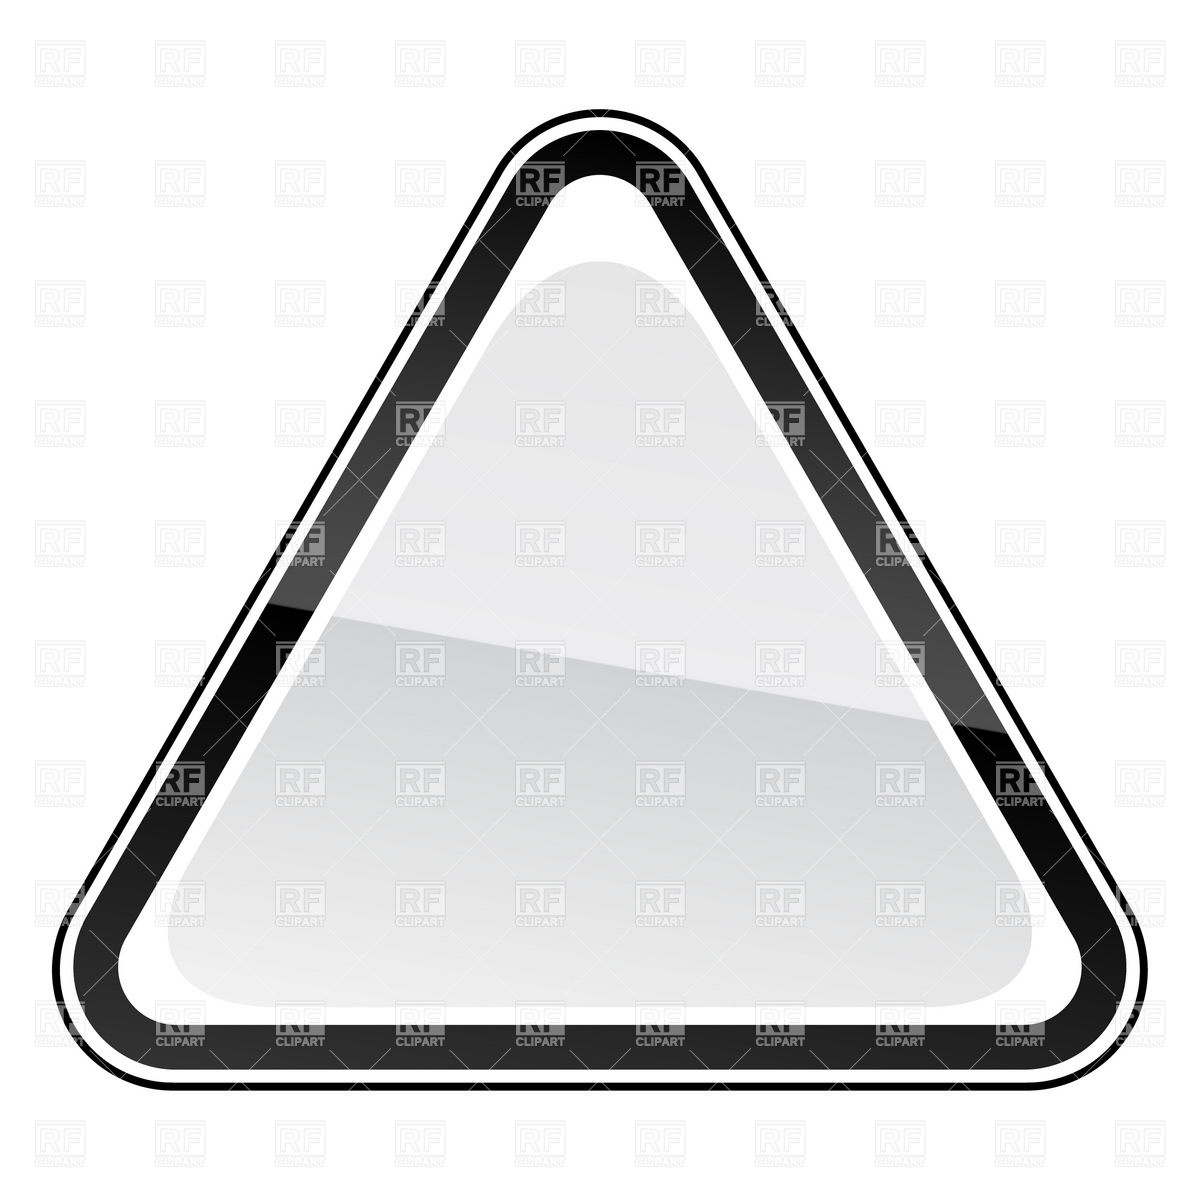 White Blank Three Cornered Road Sign With Black Border 12942